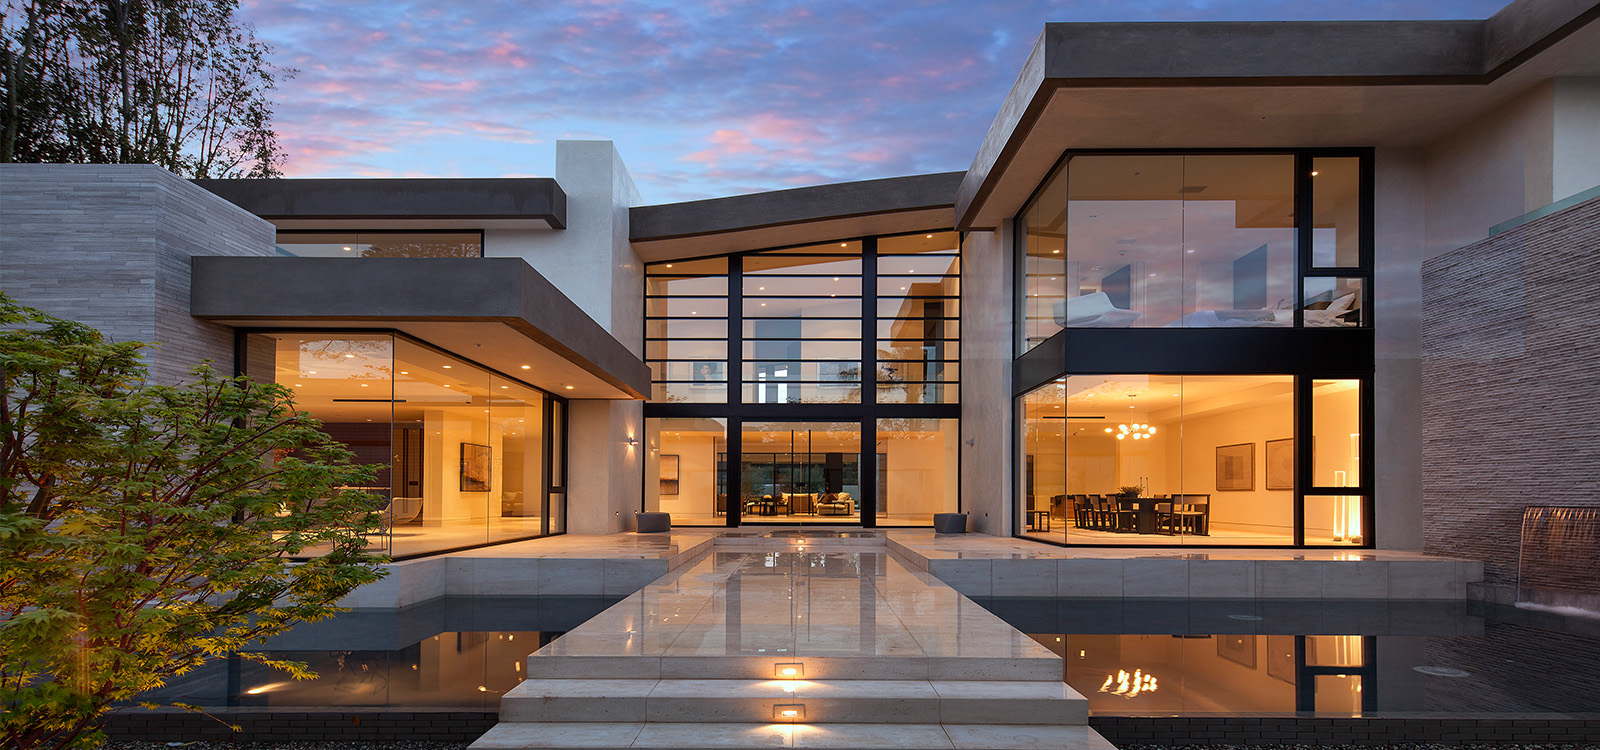 Redefining What S Hot In Dallas Luxury Listings